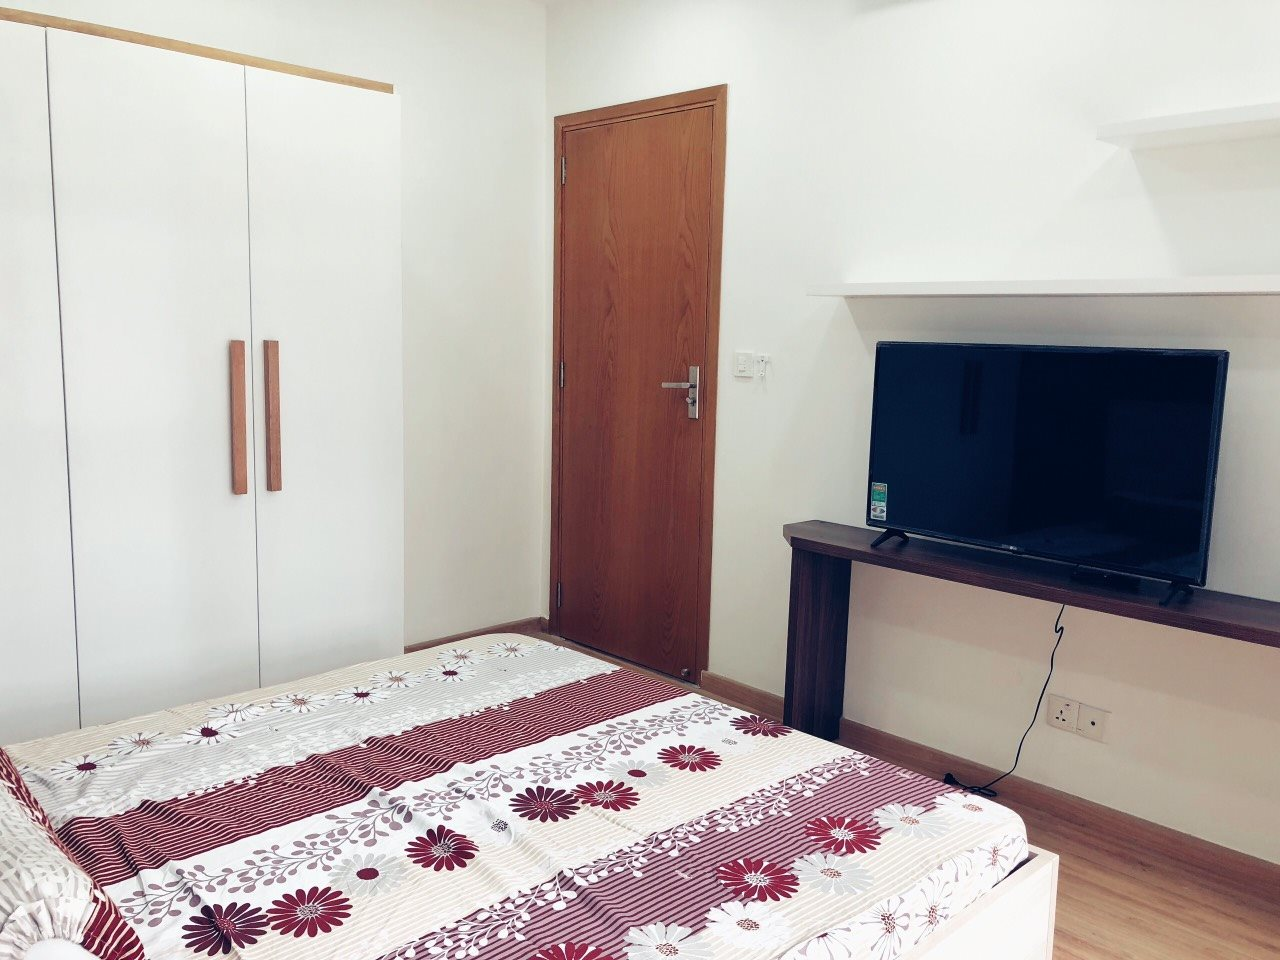 Apartment for rent D221554 (9)